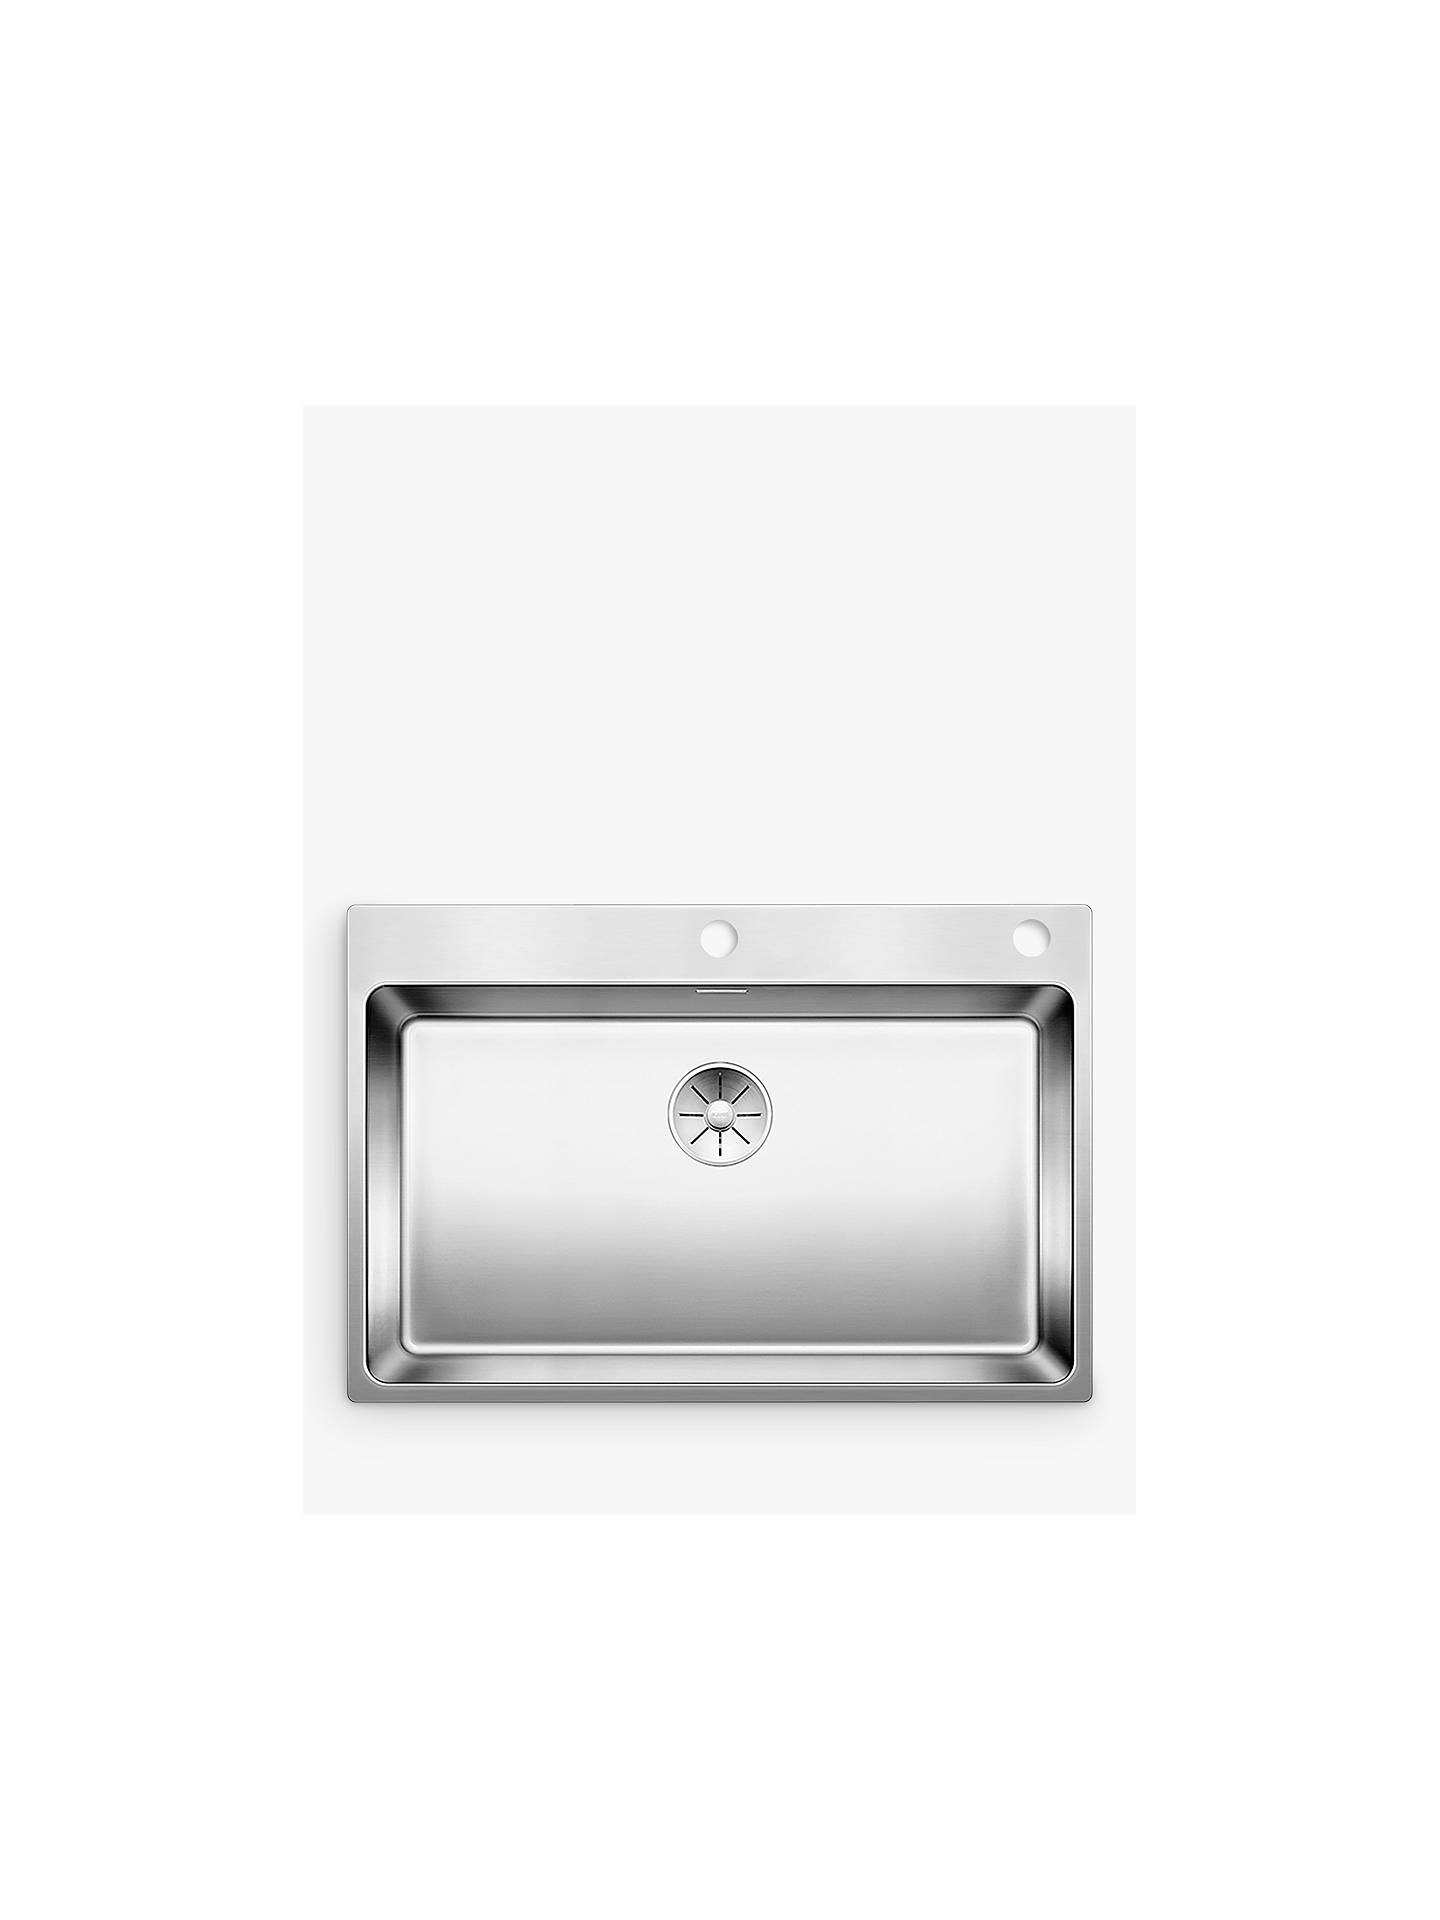 BuyBlanco Andano 700IFA Single Bowl Inset Kitchen Sink, Stainless Steel Online at johnlewis.com